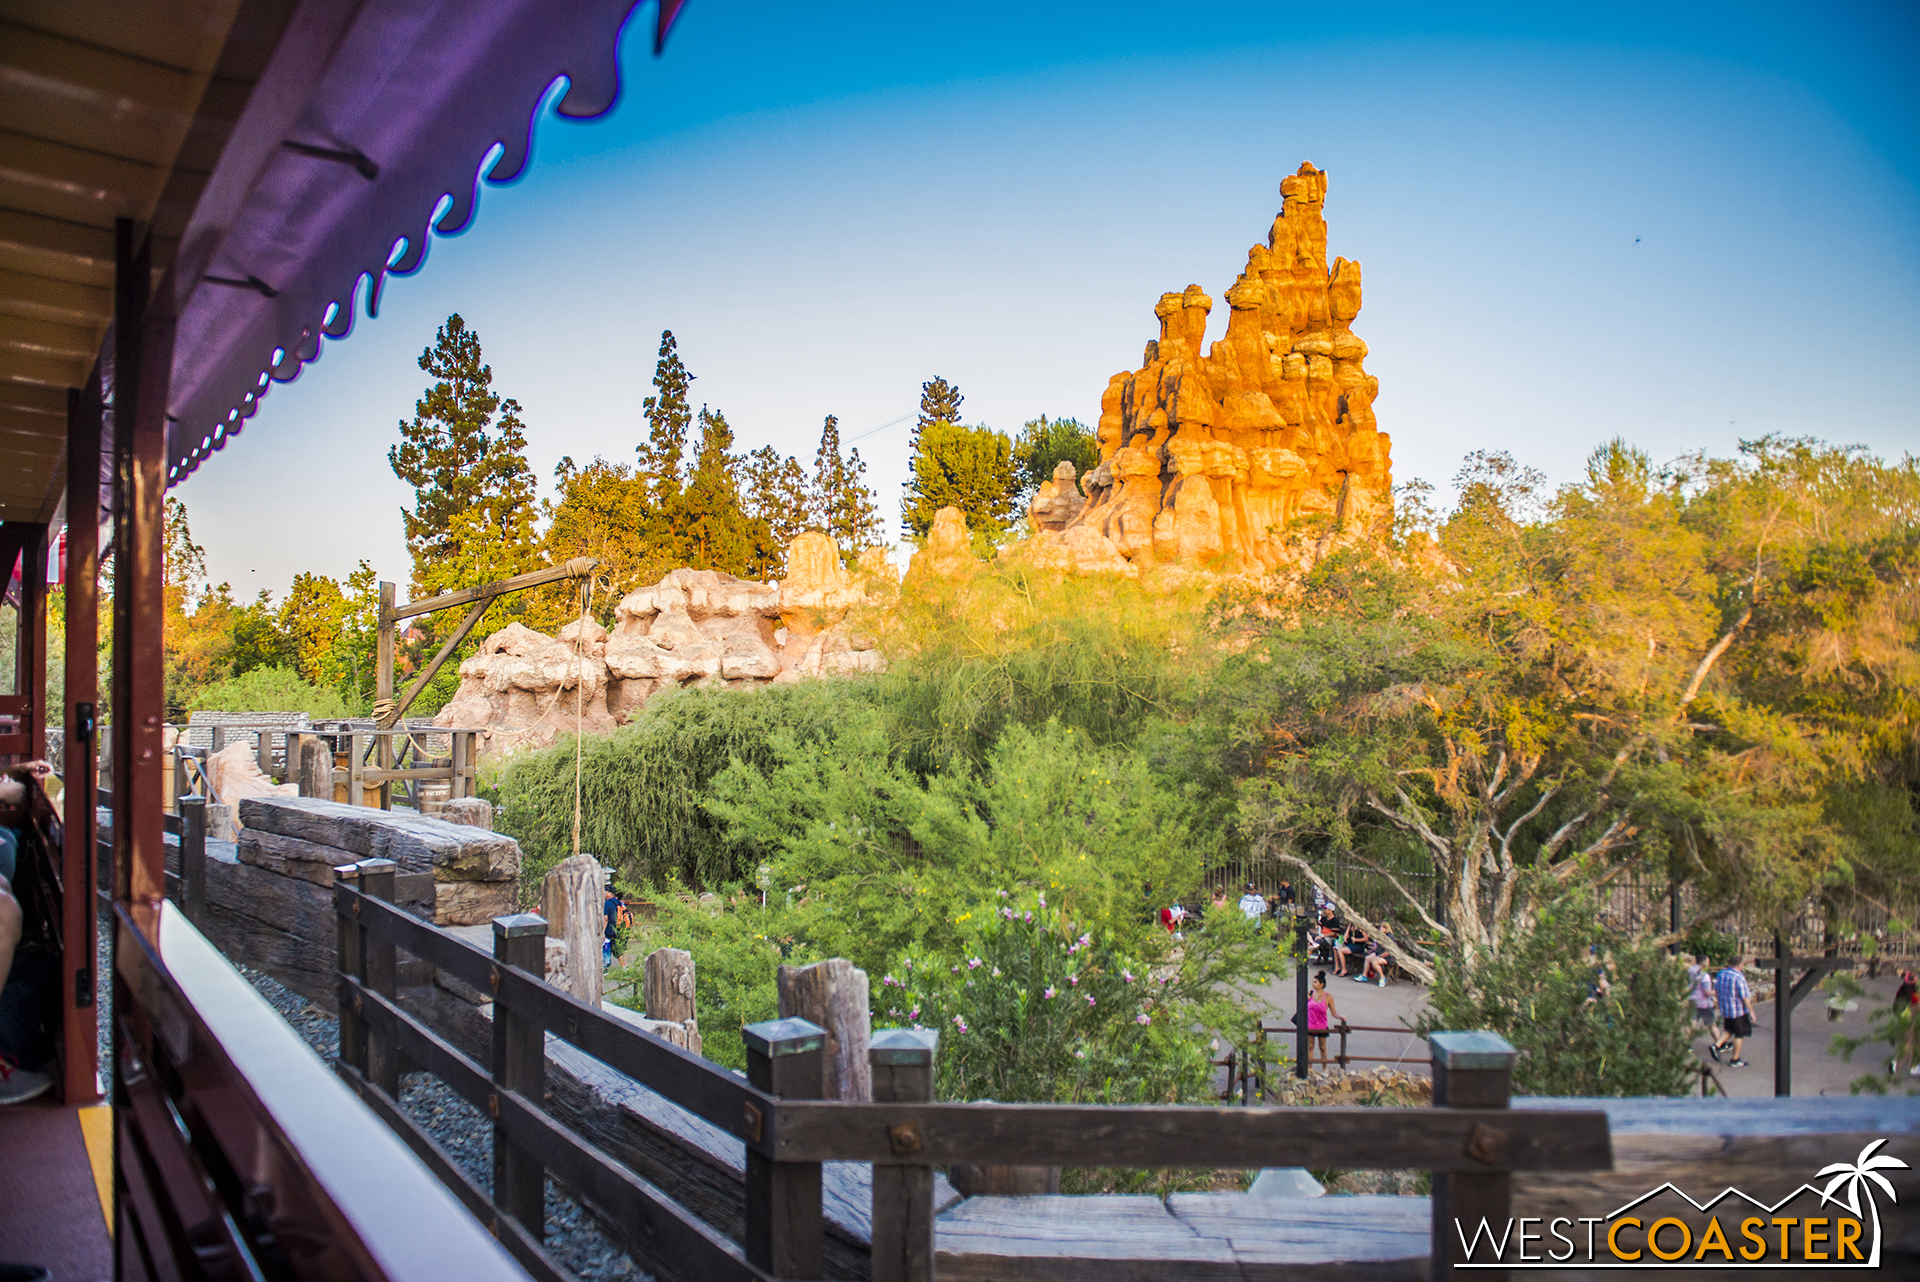 We get a nice view of the buttes of Big Thunder Mountain.